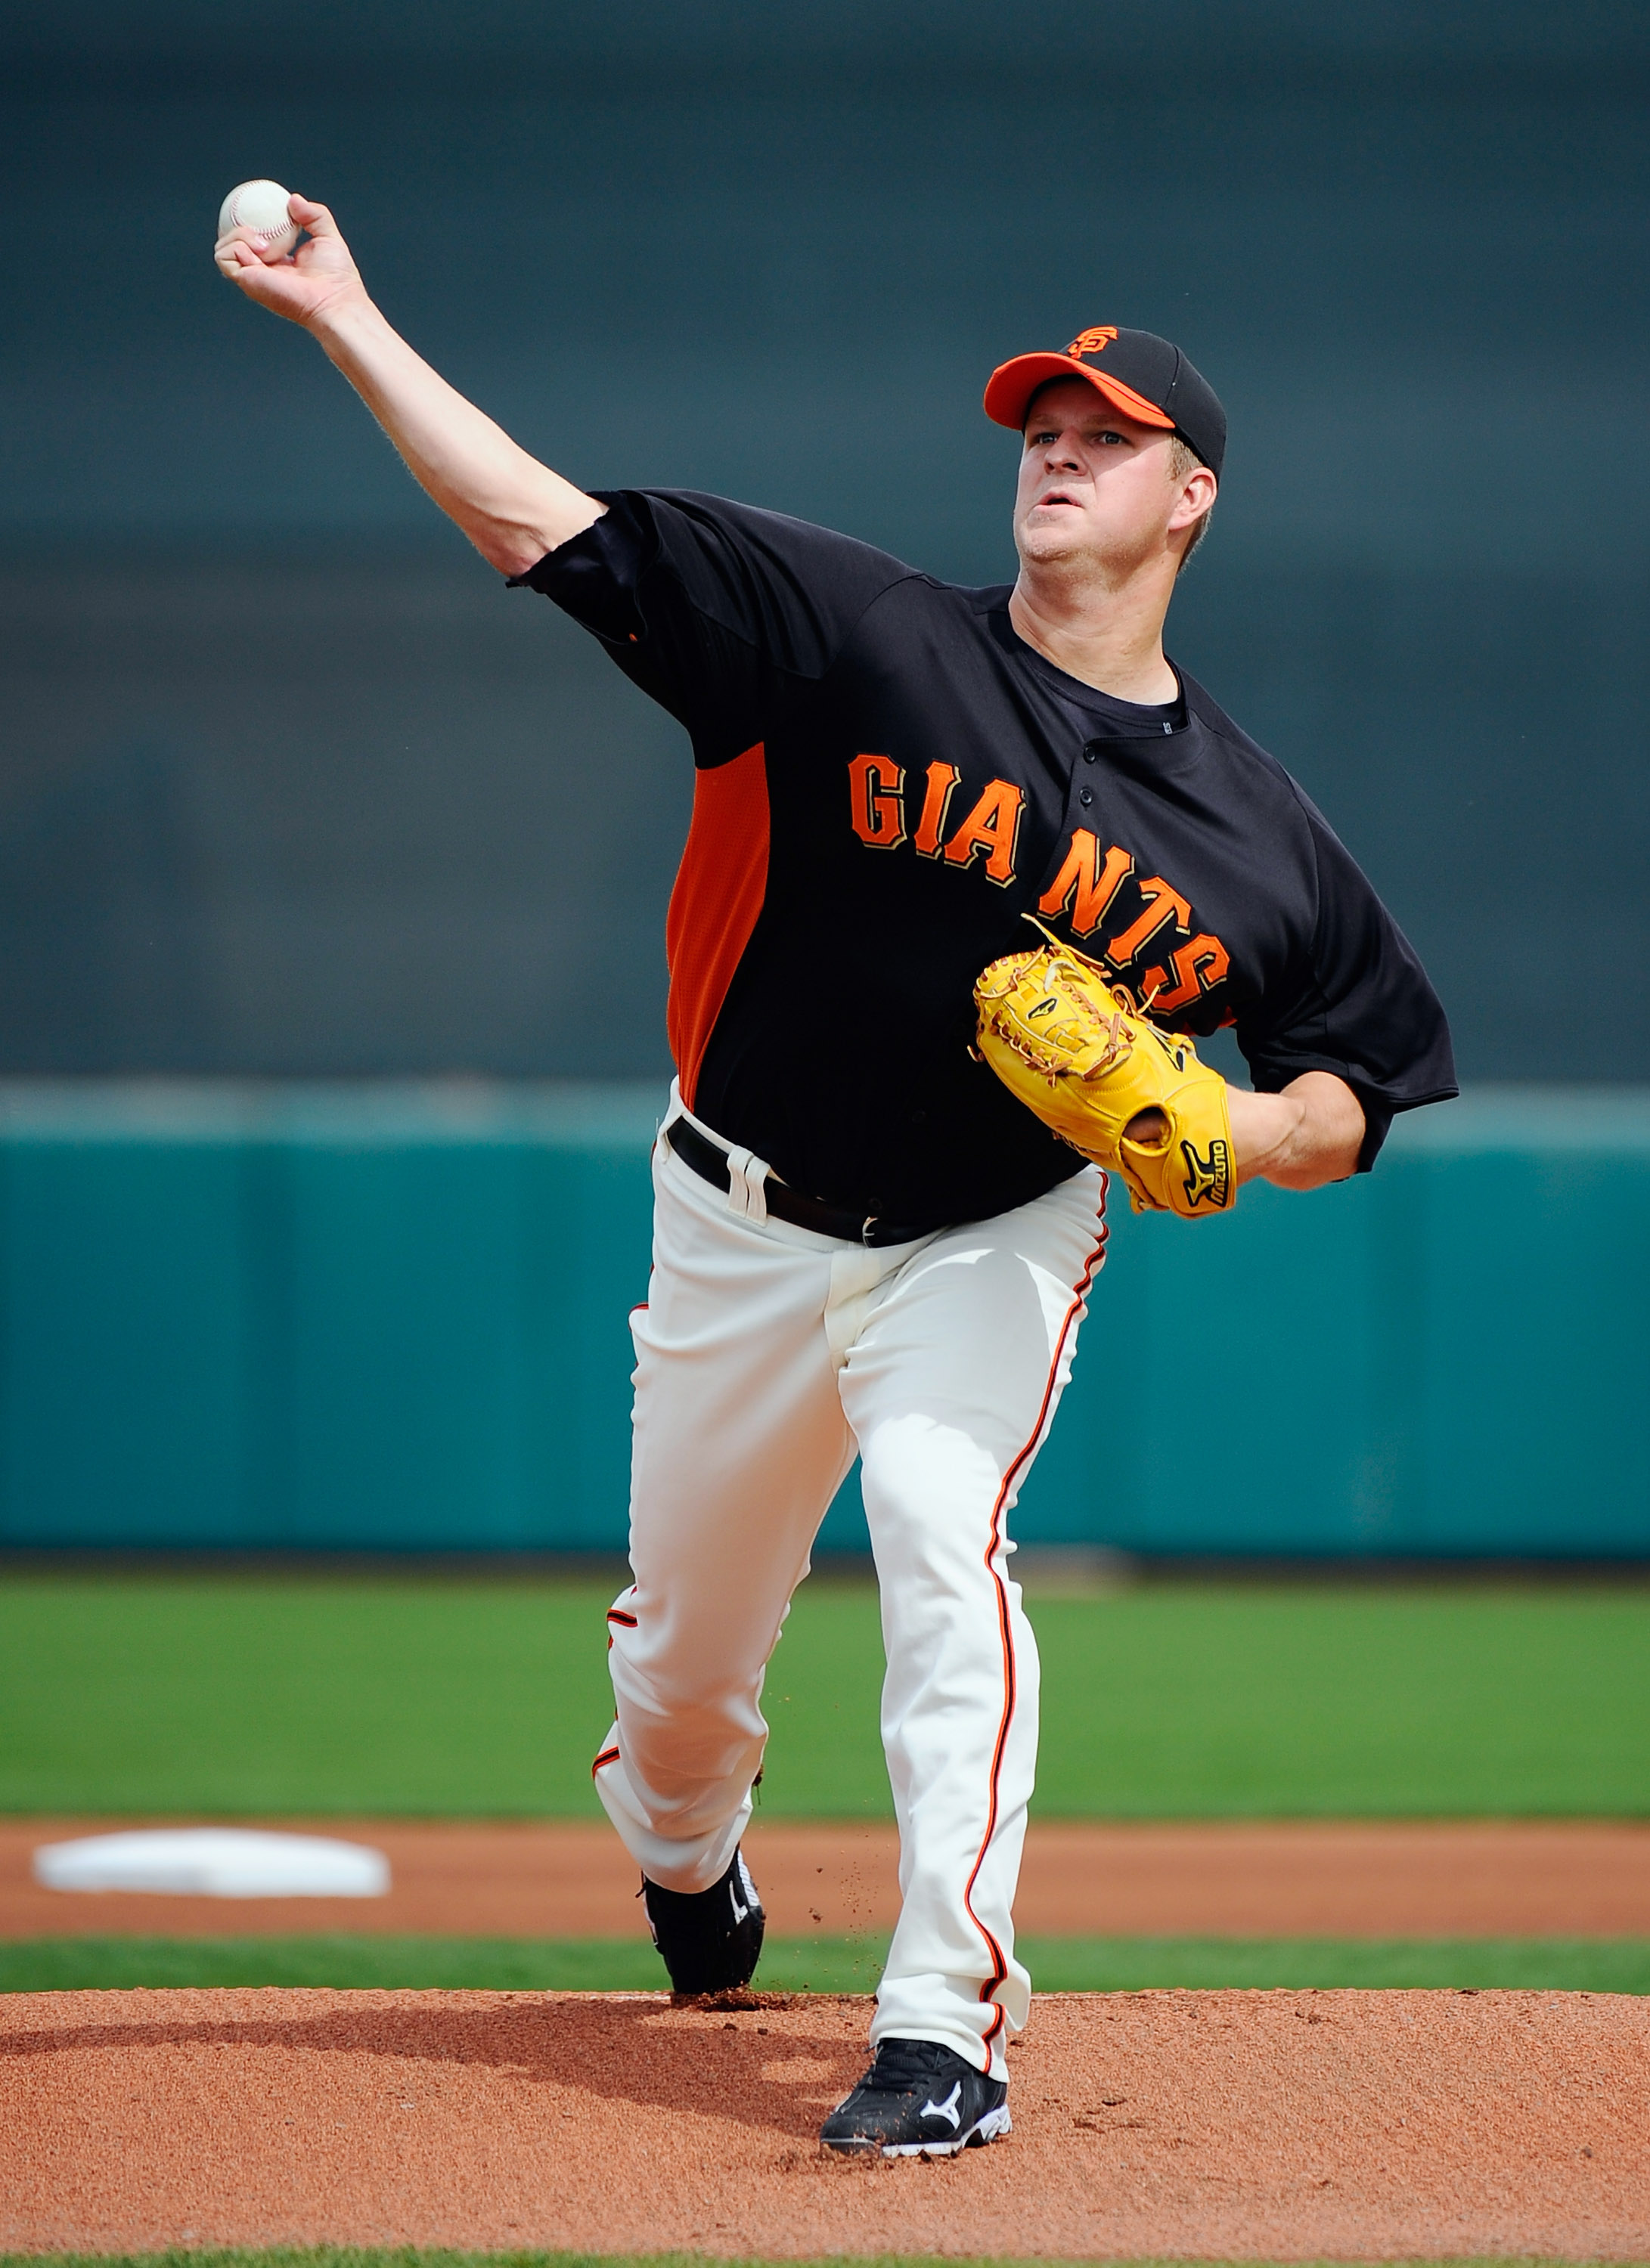 SCOTTSDALE, AZ - MARCH 14:  Matt Cain #18 of the San Francisco Giants throws a pitch against the Milwaukee Brewers during the spring training baseball game at Scottsdale Stadium on March 14, 2011 in Scottsdale, Arizona.  (Photo by Kevork Djansezian/Getty